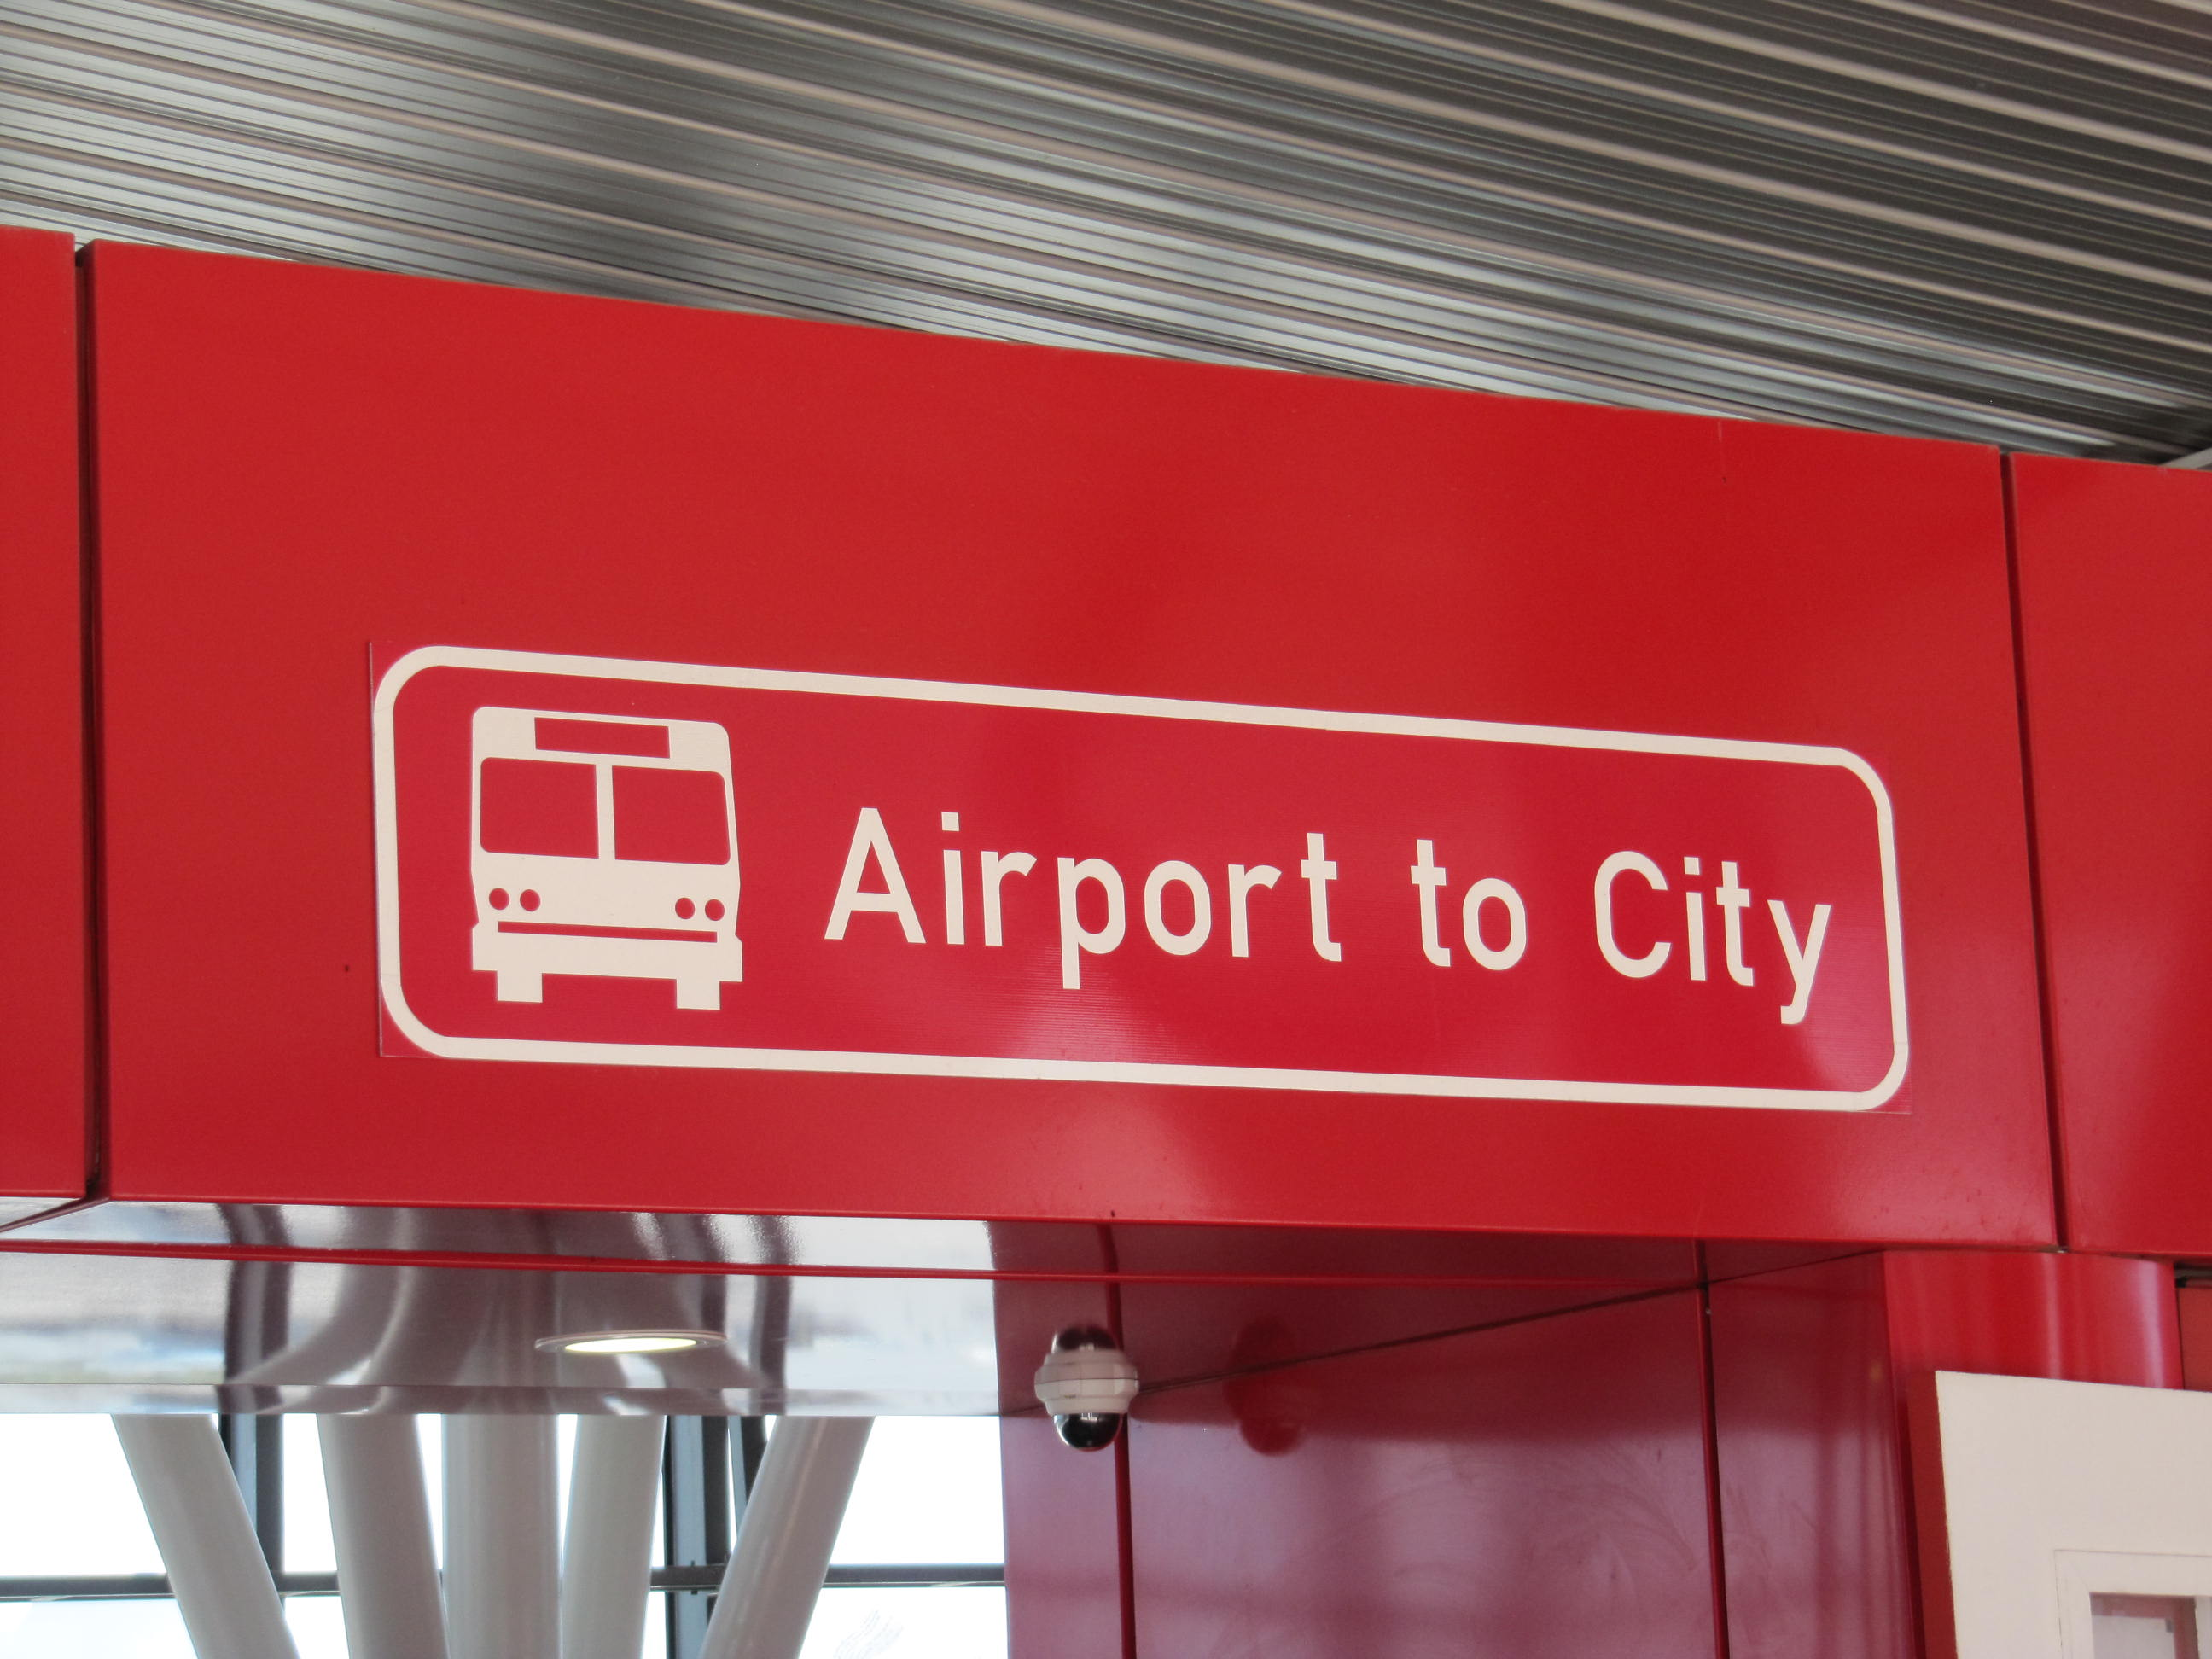 How to get from the Airport to the City in Cape Town